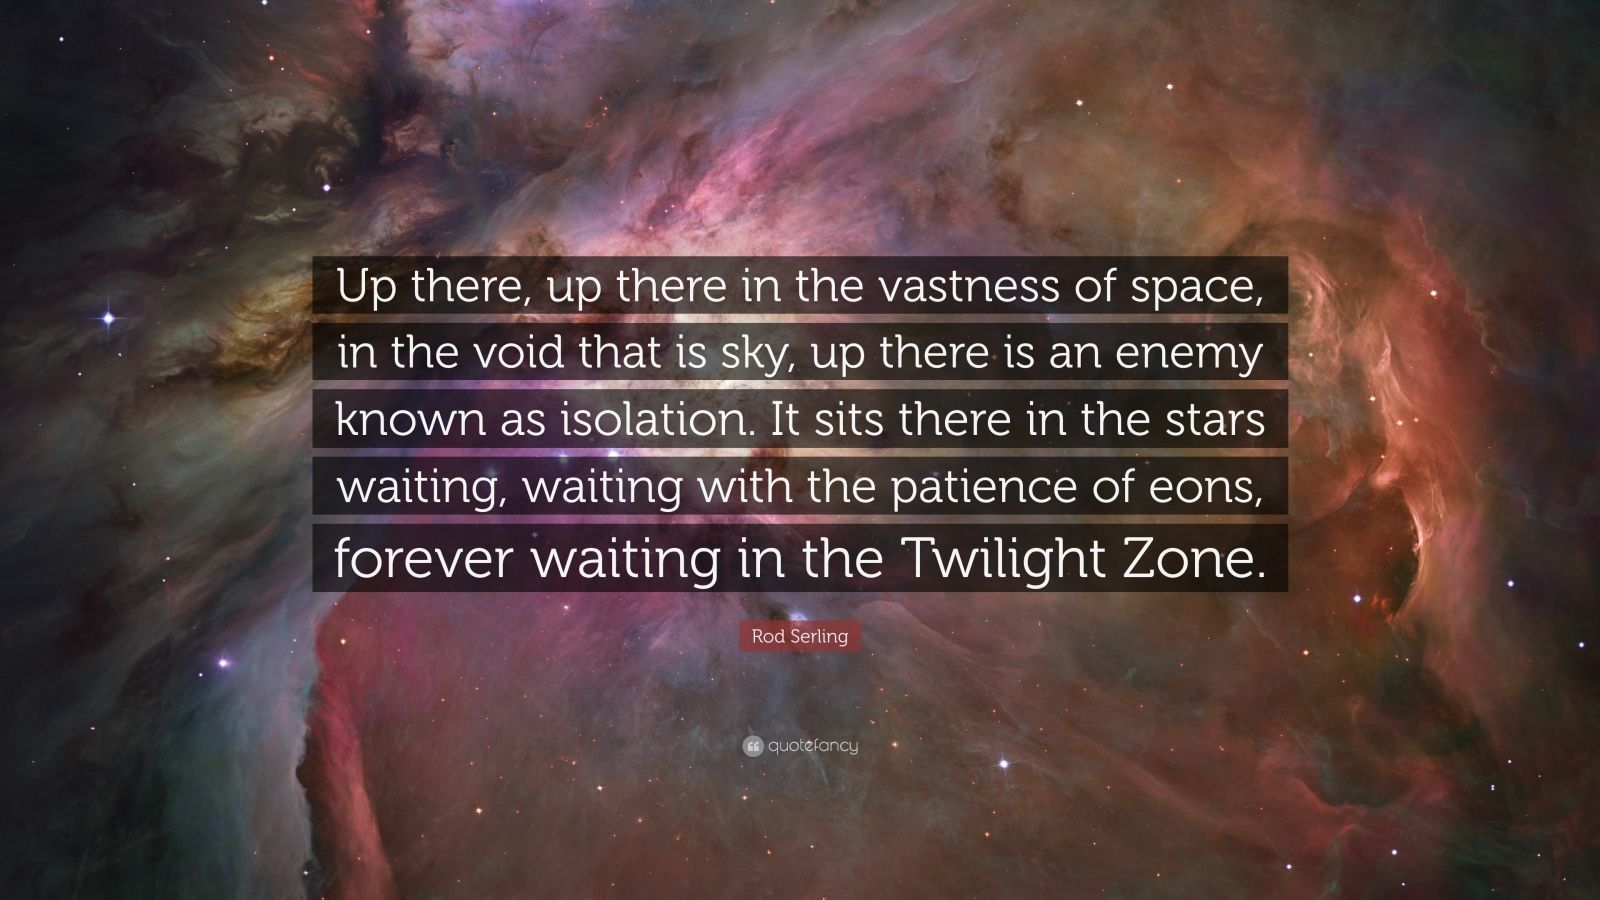 "Rod Serling Quote: ""Up there, up there in the vastness of space, in the void that is sky, up there is an enemy known as isolation. It sits there in the stars waiting, waiting with the patience of eons, forever waiting in the Twilight Zone."""